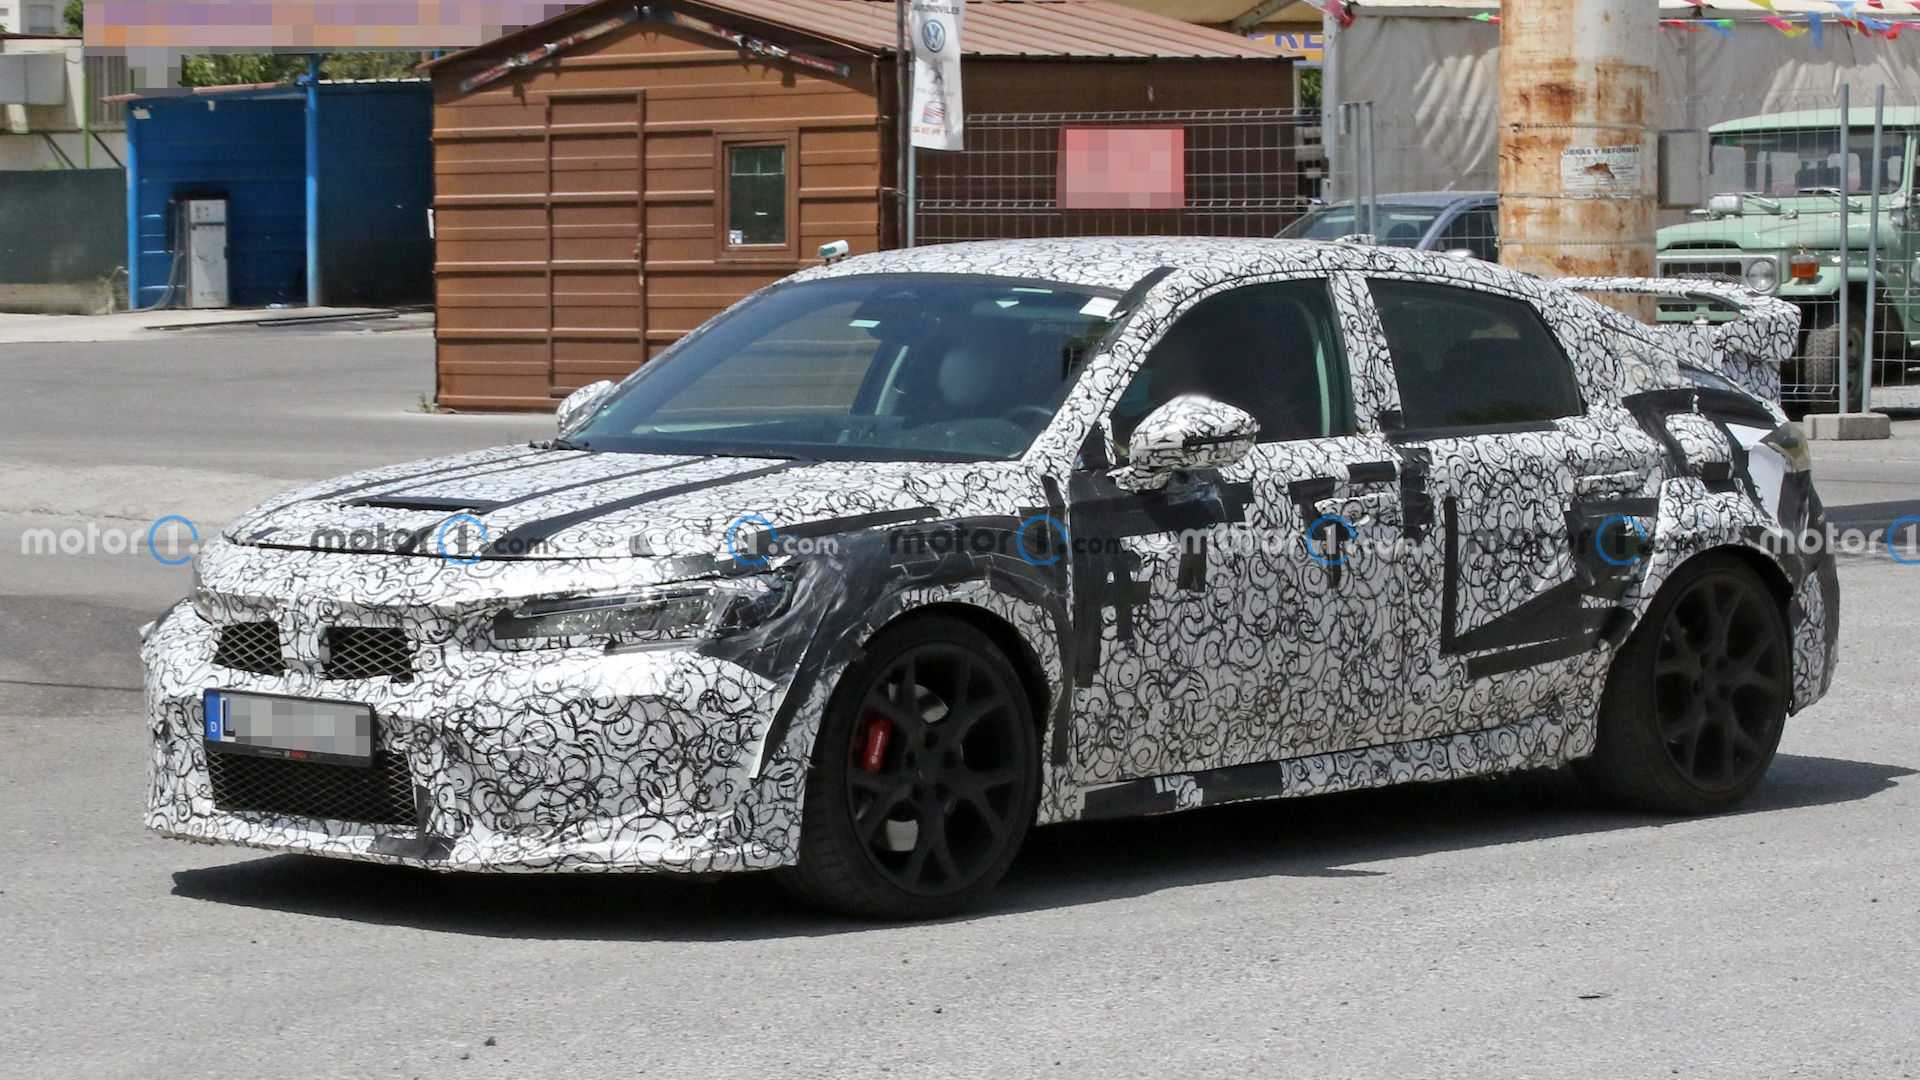 2022 Civic Type-R Spied: Styling That Still Raises Eyebrows And Performance That Still Raises Pulse Rate